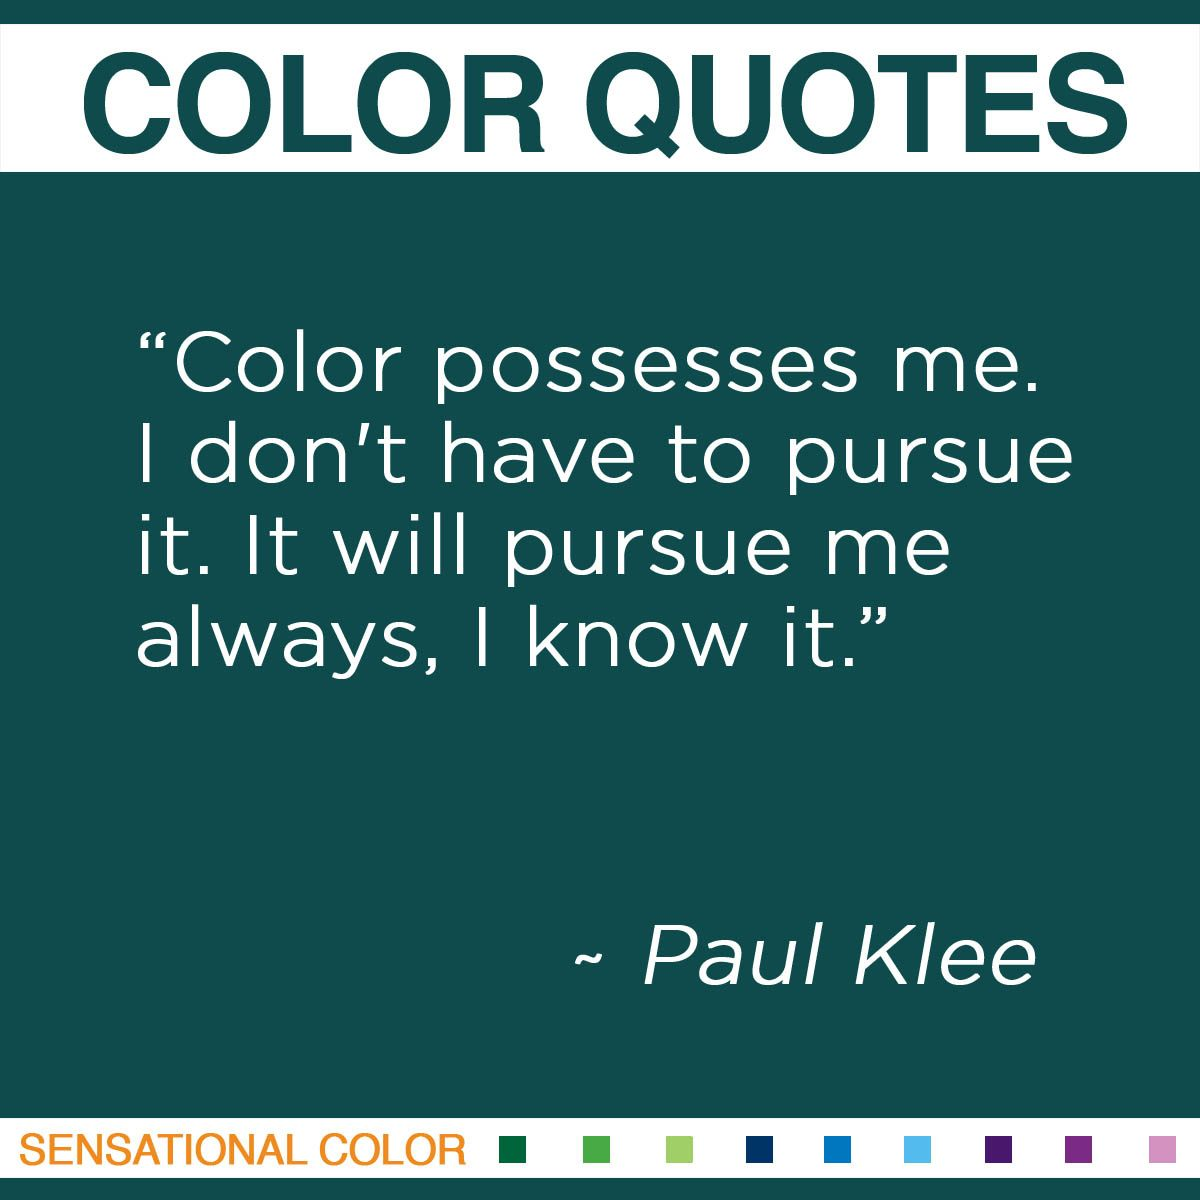 """""""Color possesses me. I don't have to pursue it. It will pursue me always, I know it.""""  - Paul Klee"""